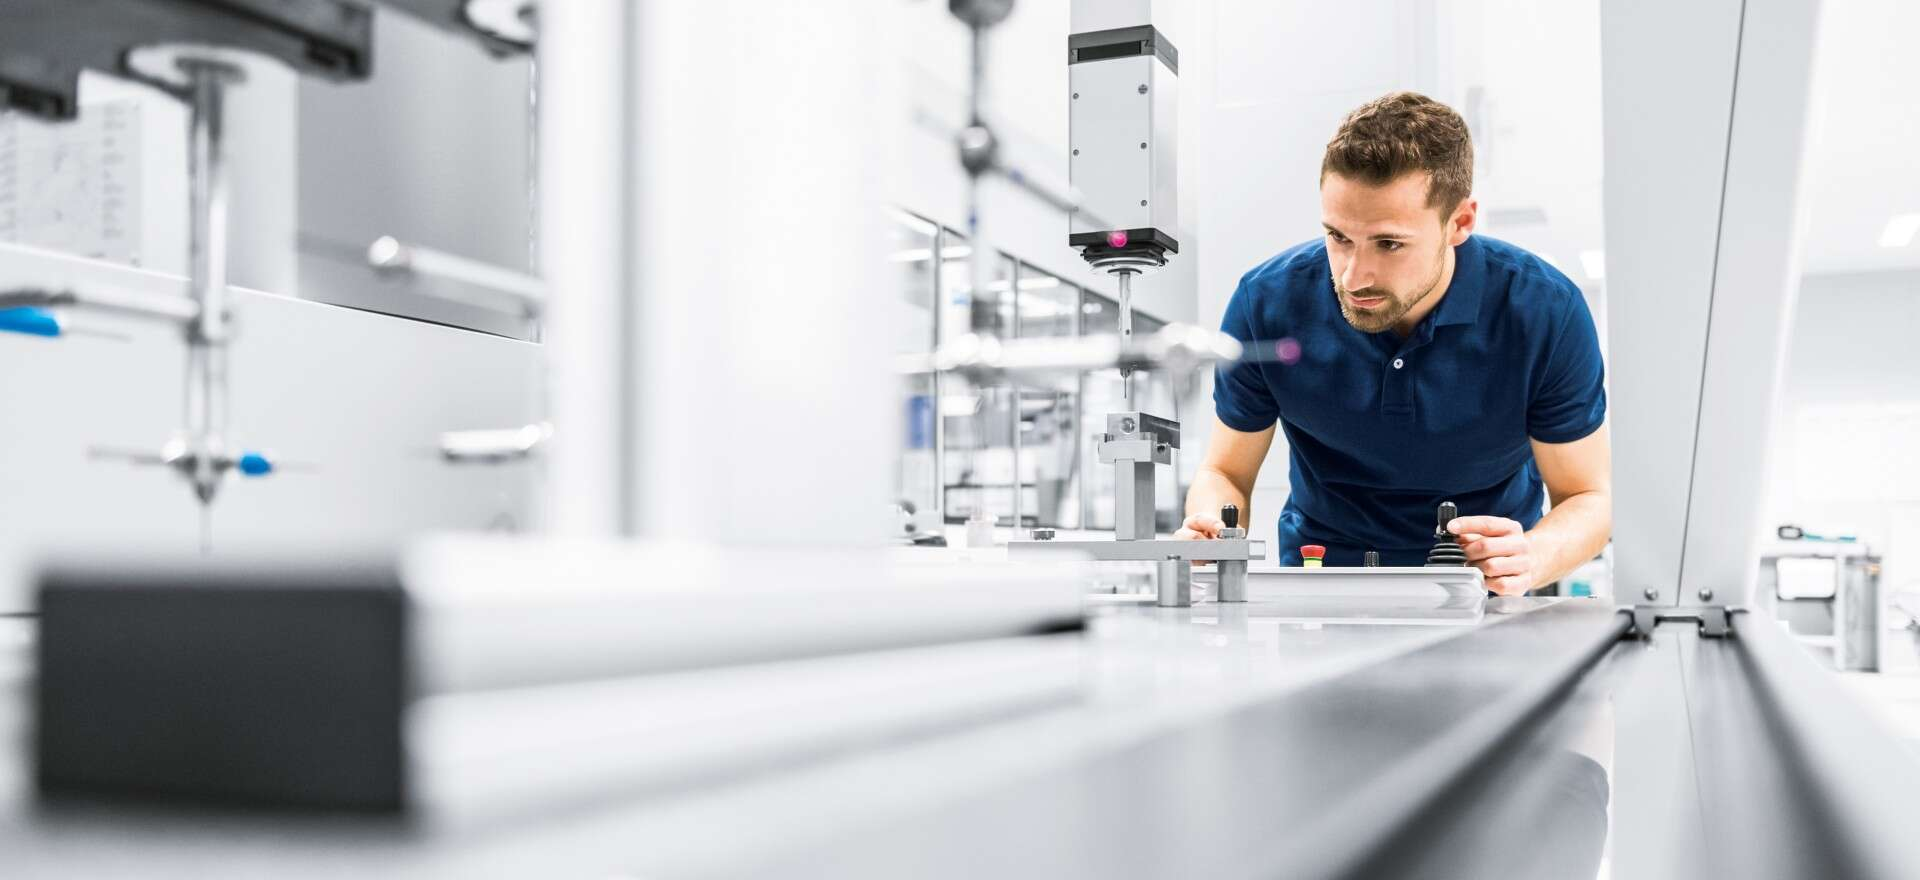 Innovation and technology at Festo